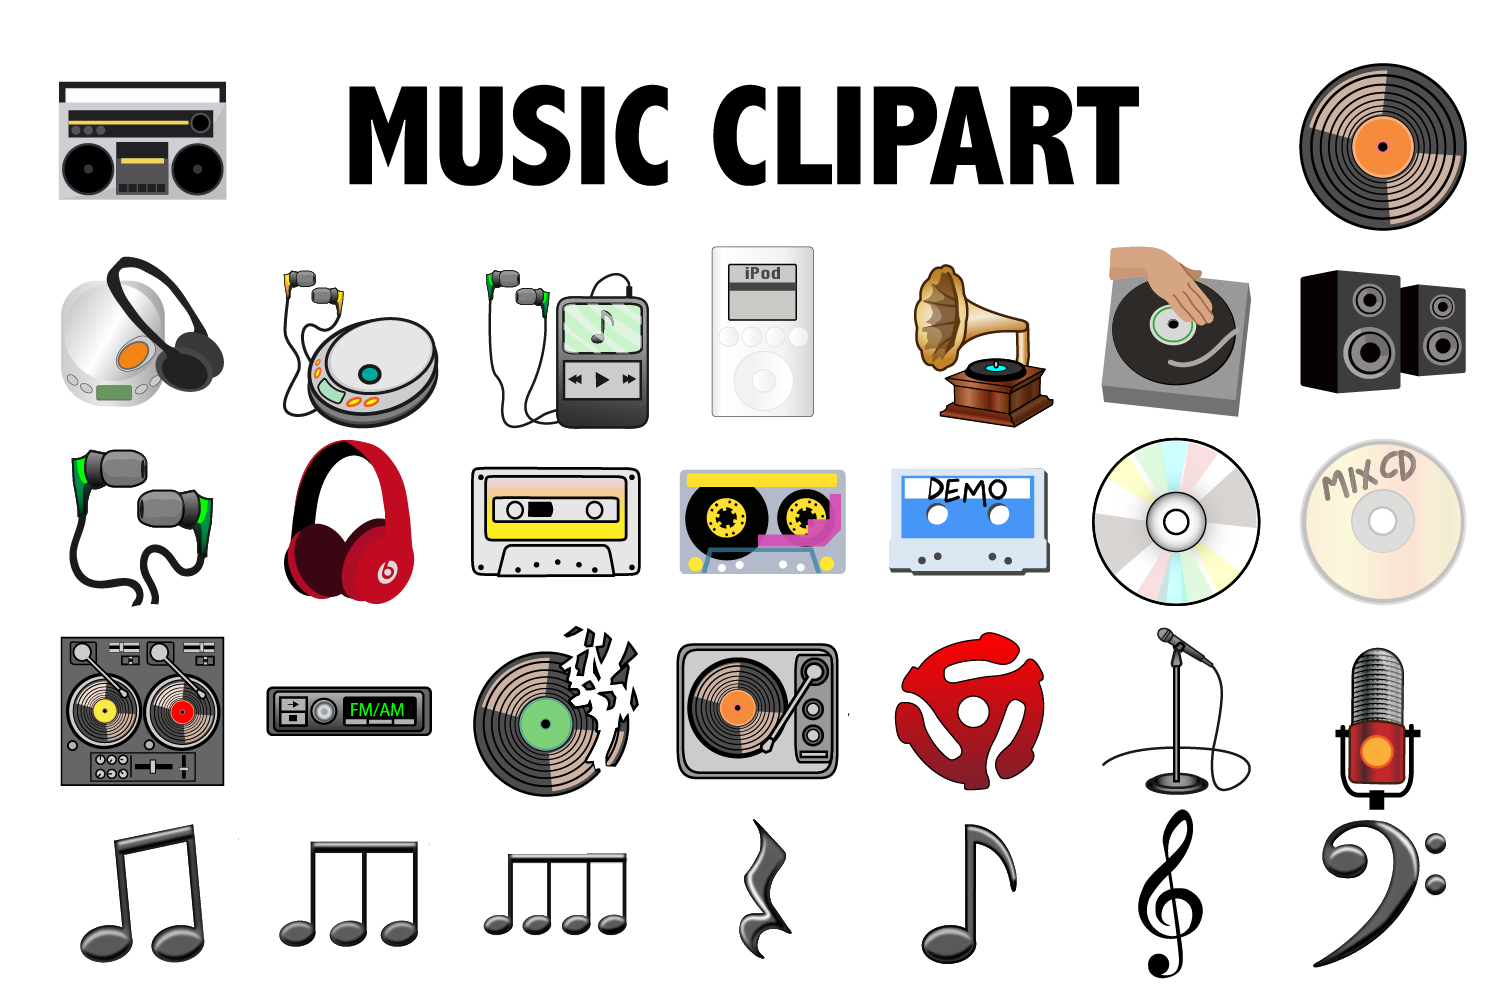 Music Clipart example image 1